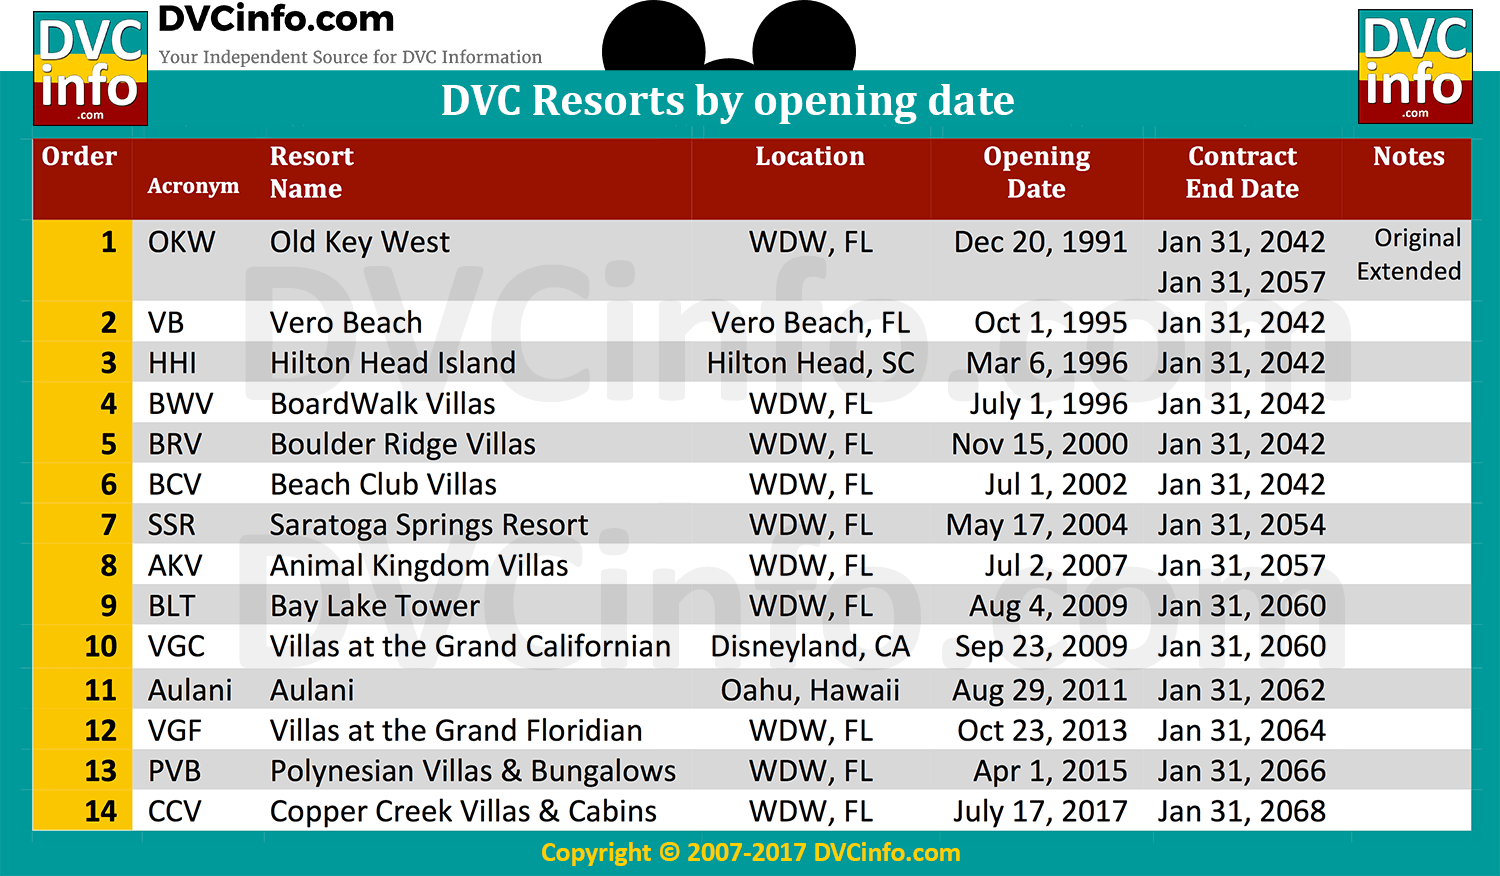 How many DVC resorts are there  DVCinfo